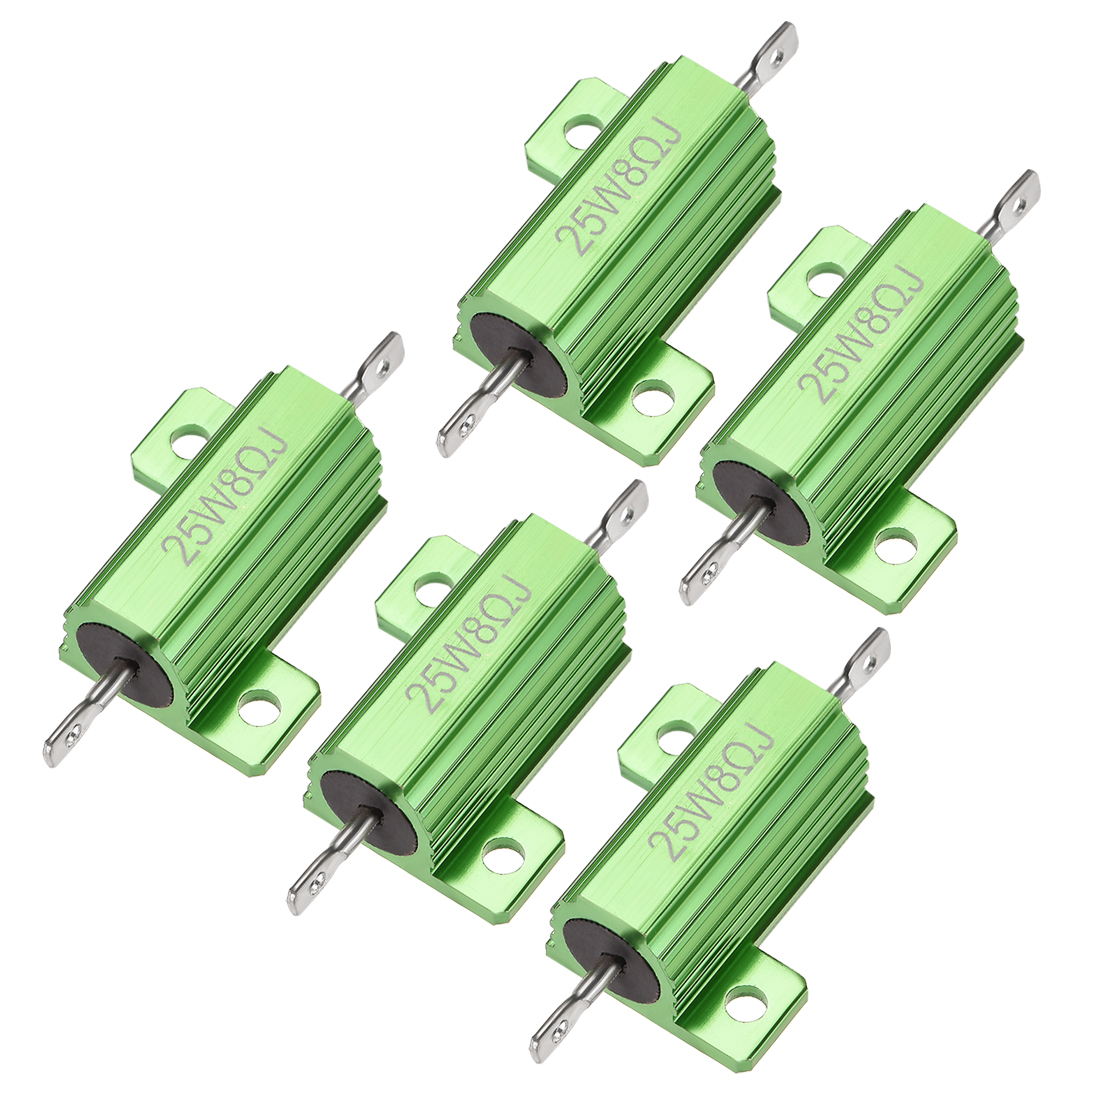 25W 8 Ohm 5% Aluminum Housing Resistor Wirewound Resistor Green Tone 5 Pcs